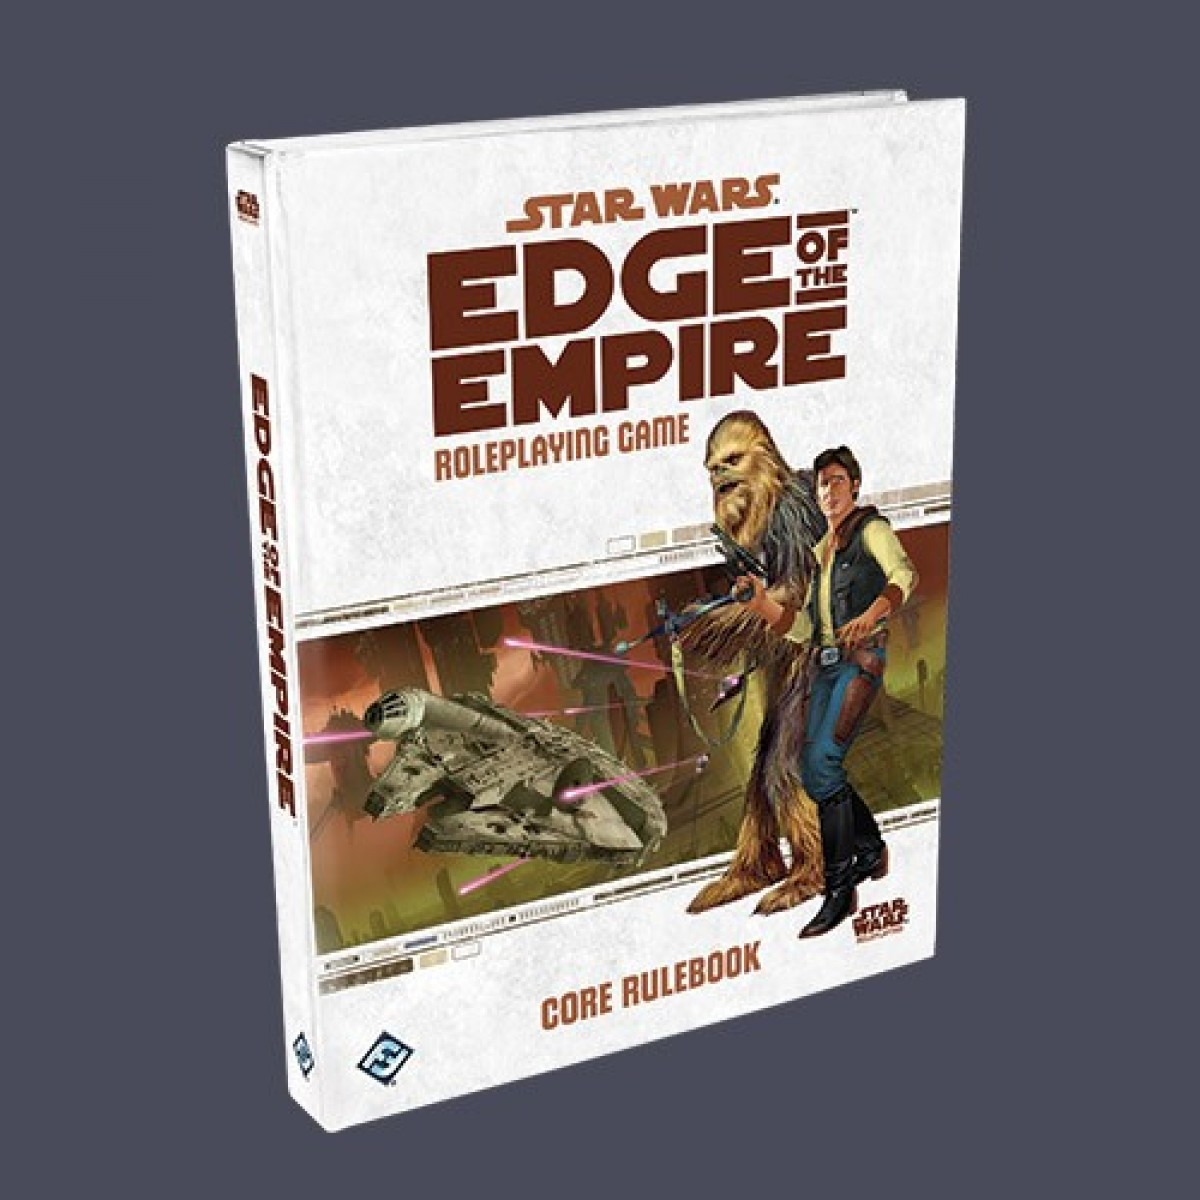 Star Wars: Edge of the Empire Roleplaying Game Core Rulebook